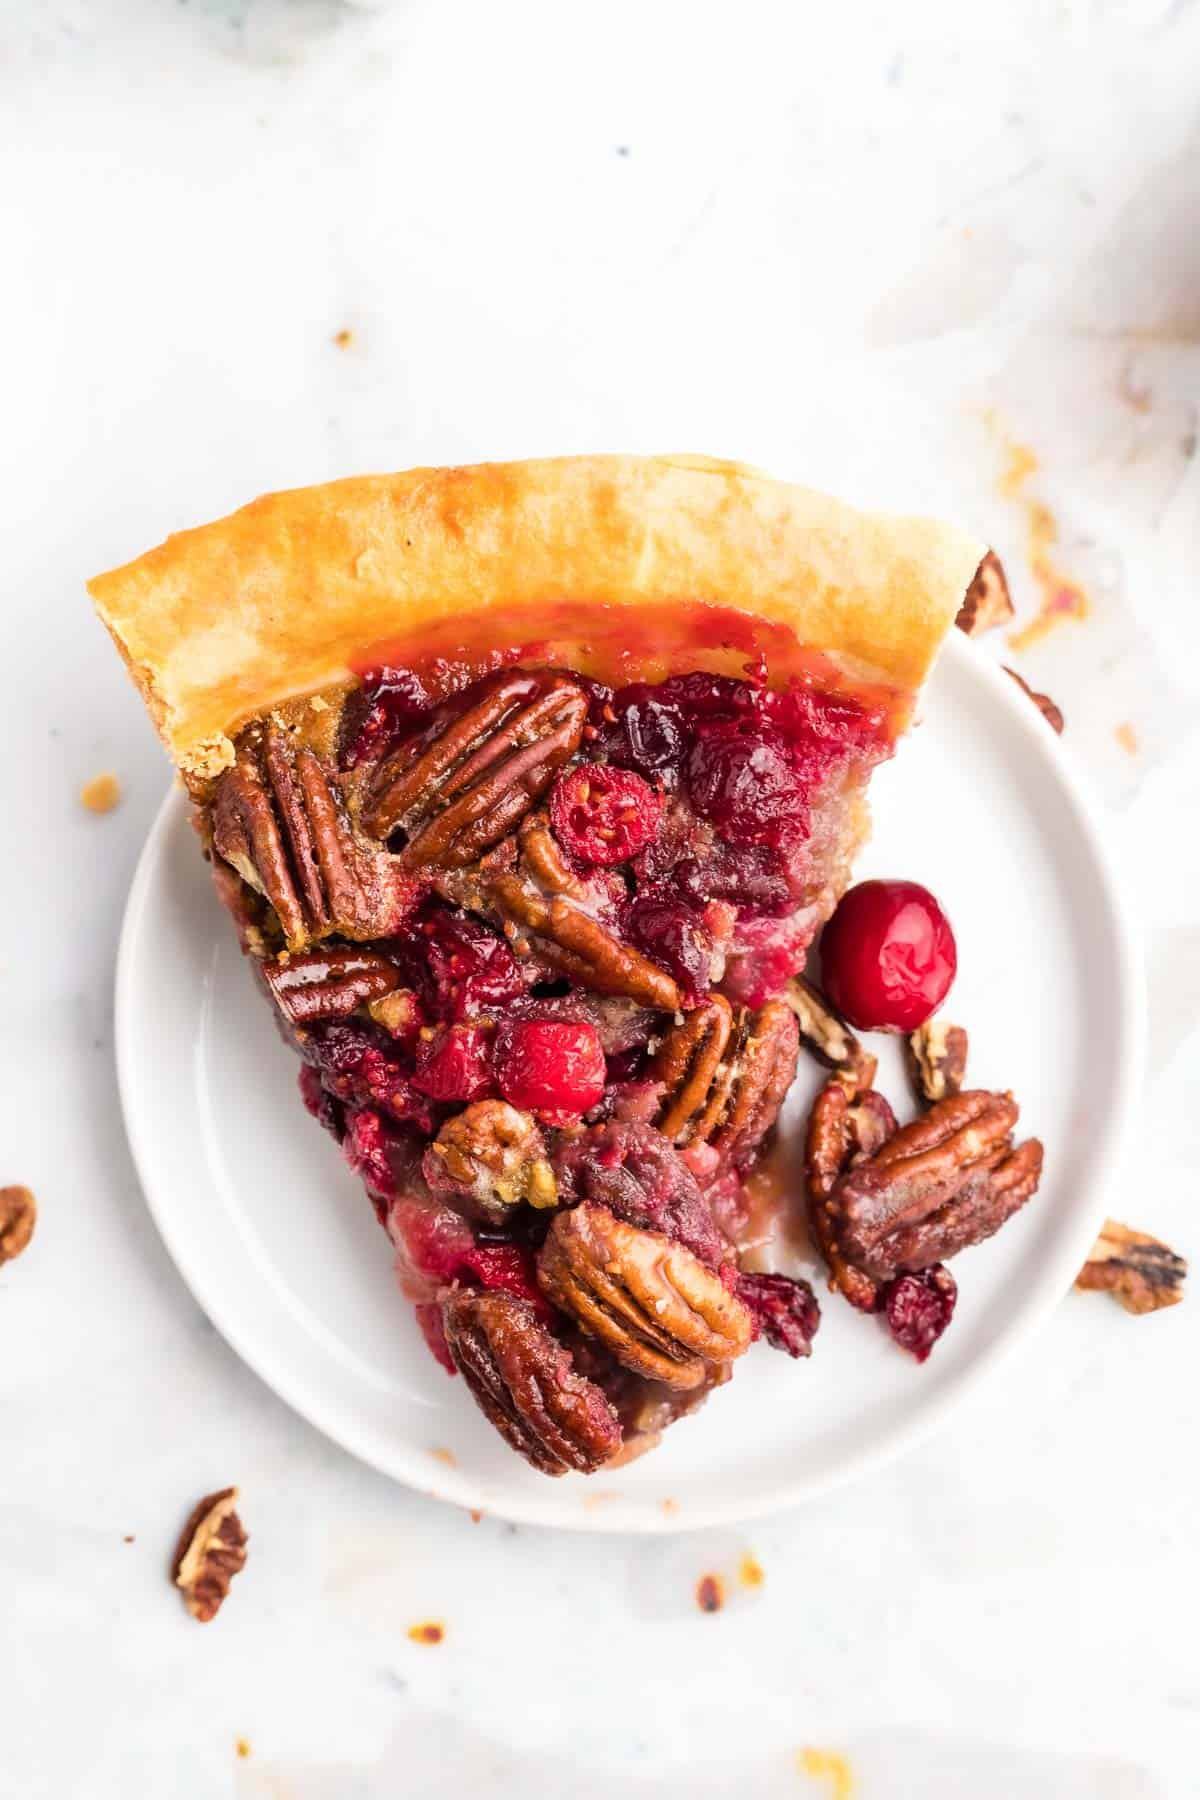 Overhead view of cranberry and pecan pie on a white plate.